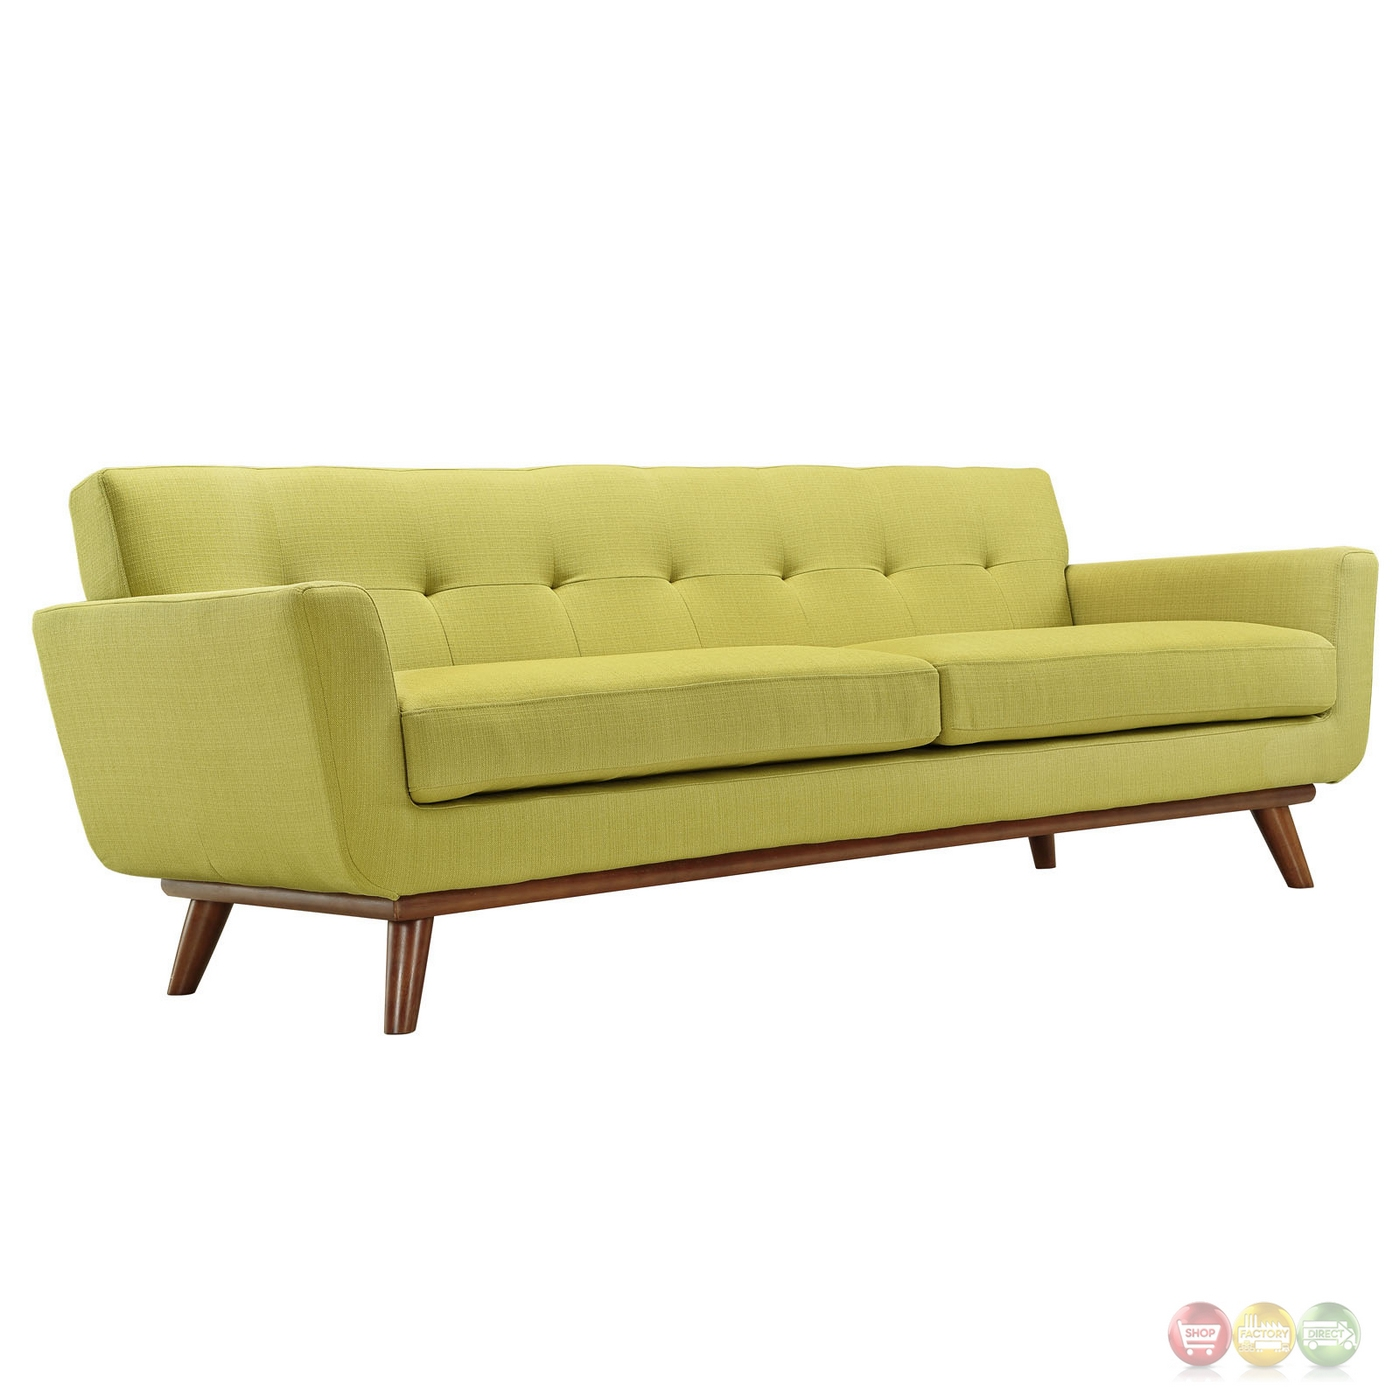 button tufted sofas european leather sofa engage modern 2pc upholstered loveseat and